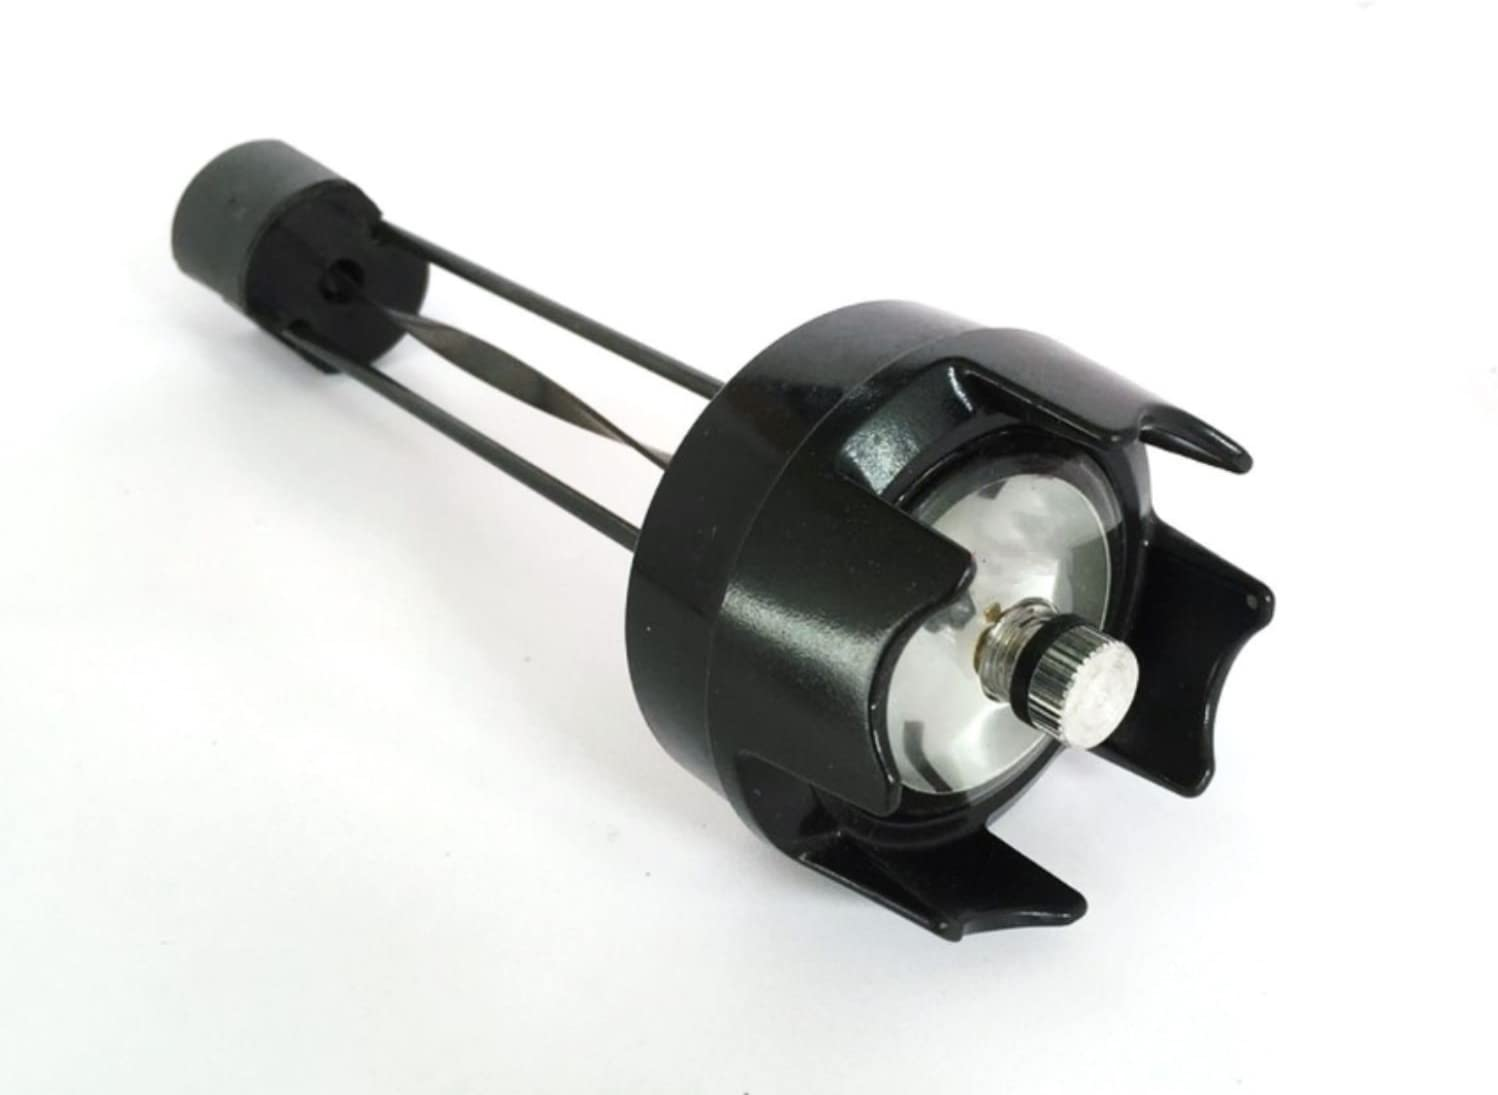 ITACO Boat Motor 6YL-24610-01-00 00 Fuel Tank Cap Assy for Yamaha Outboard 4HP - 40HP 2/4-stroke Boat Motor Engine